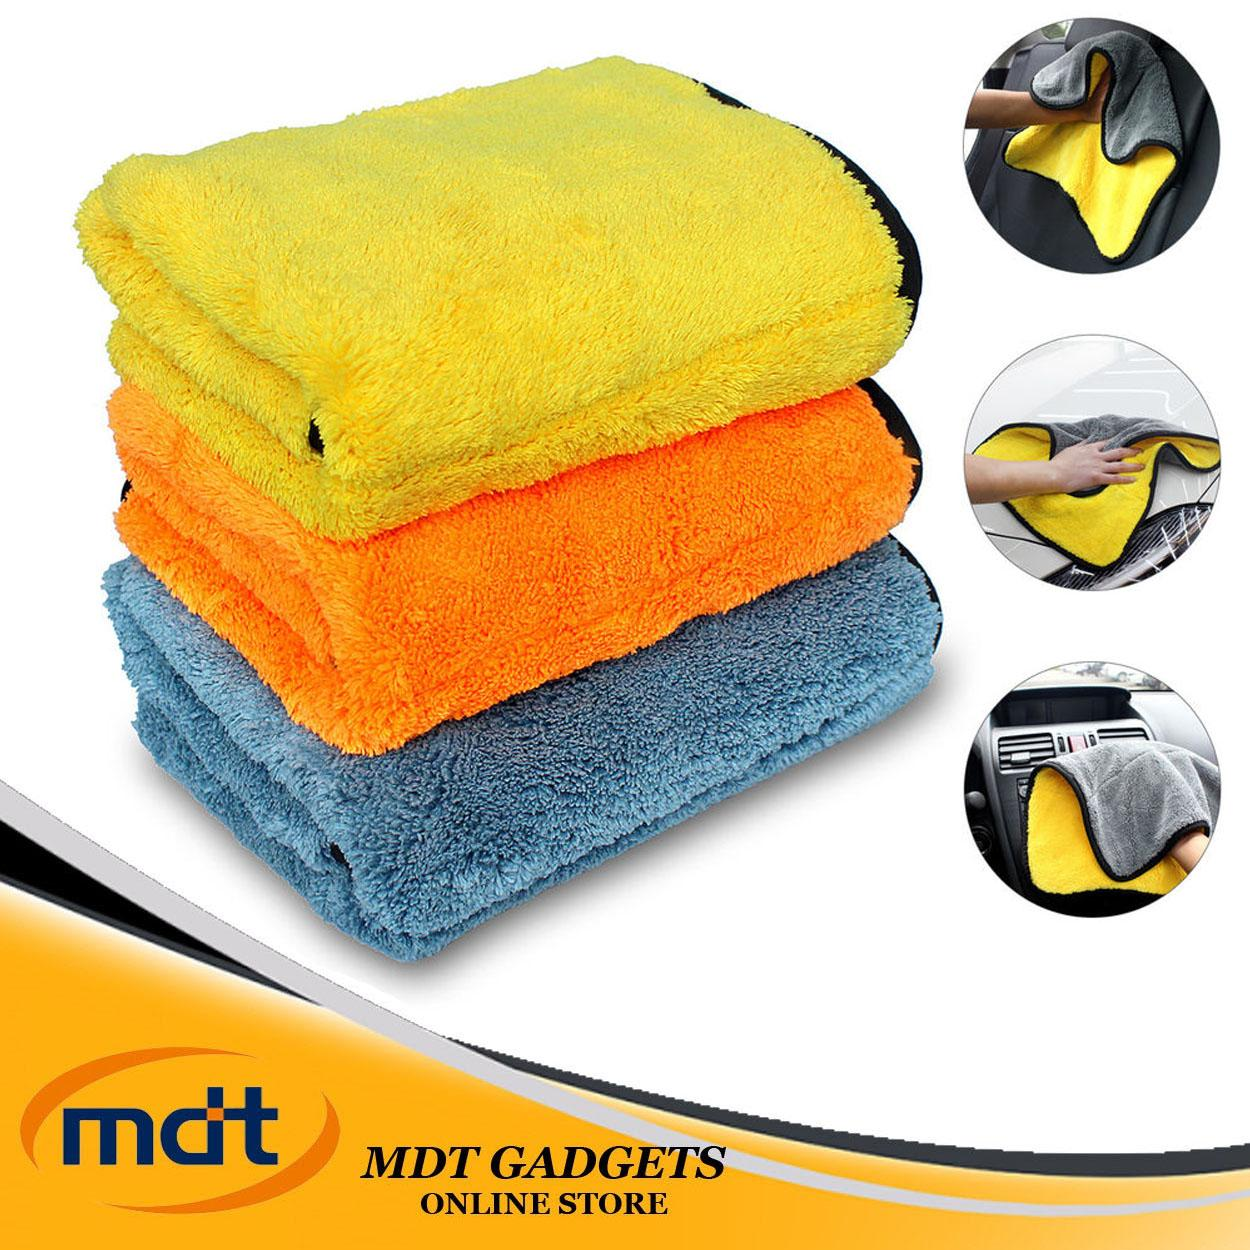 Super Absorbent Car Wash Towel Cleaning Drying Towel (multicolor) By Mdt Gadgets.